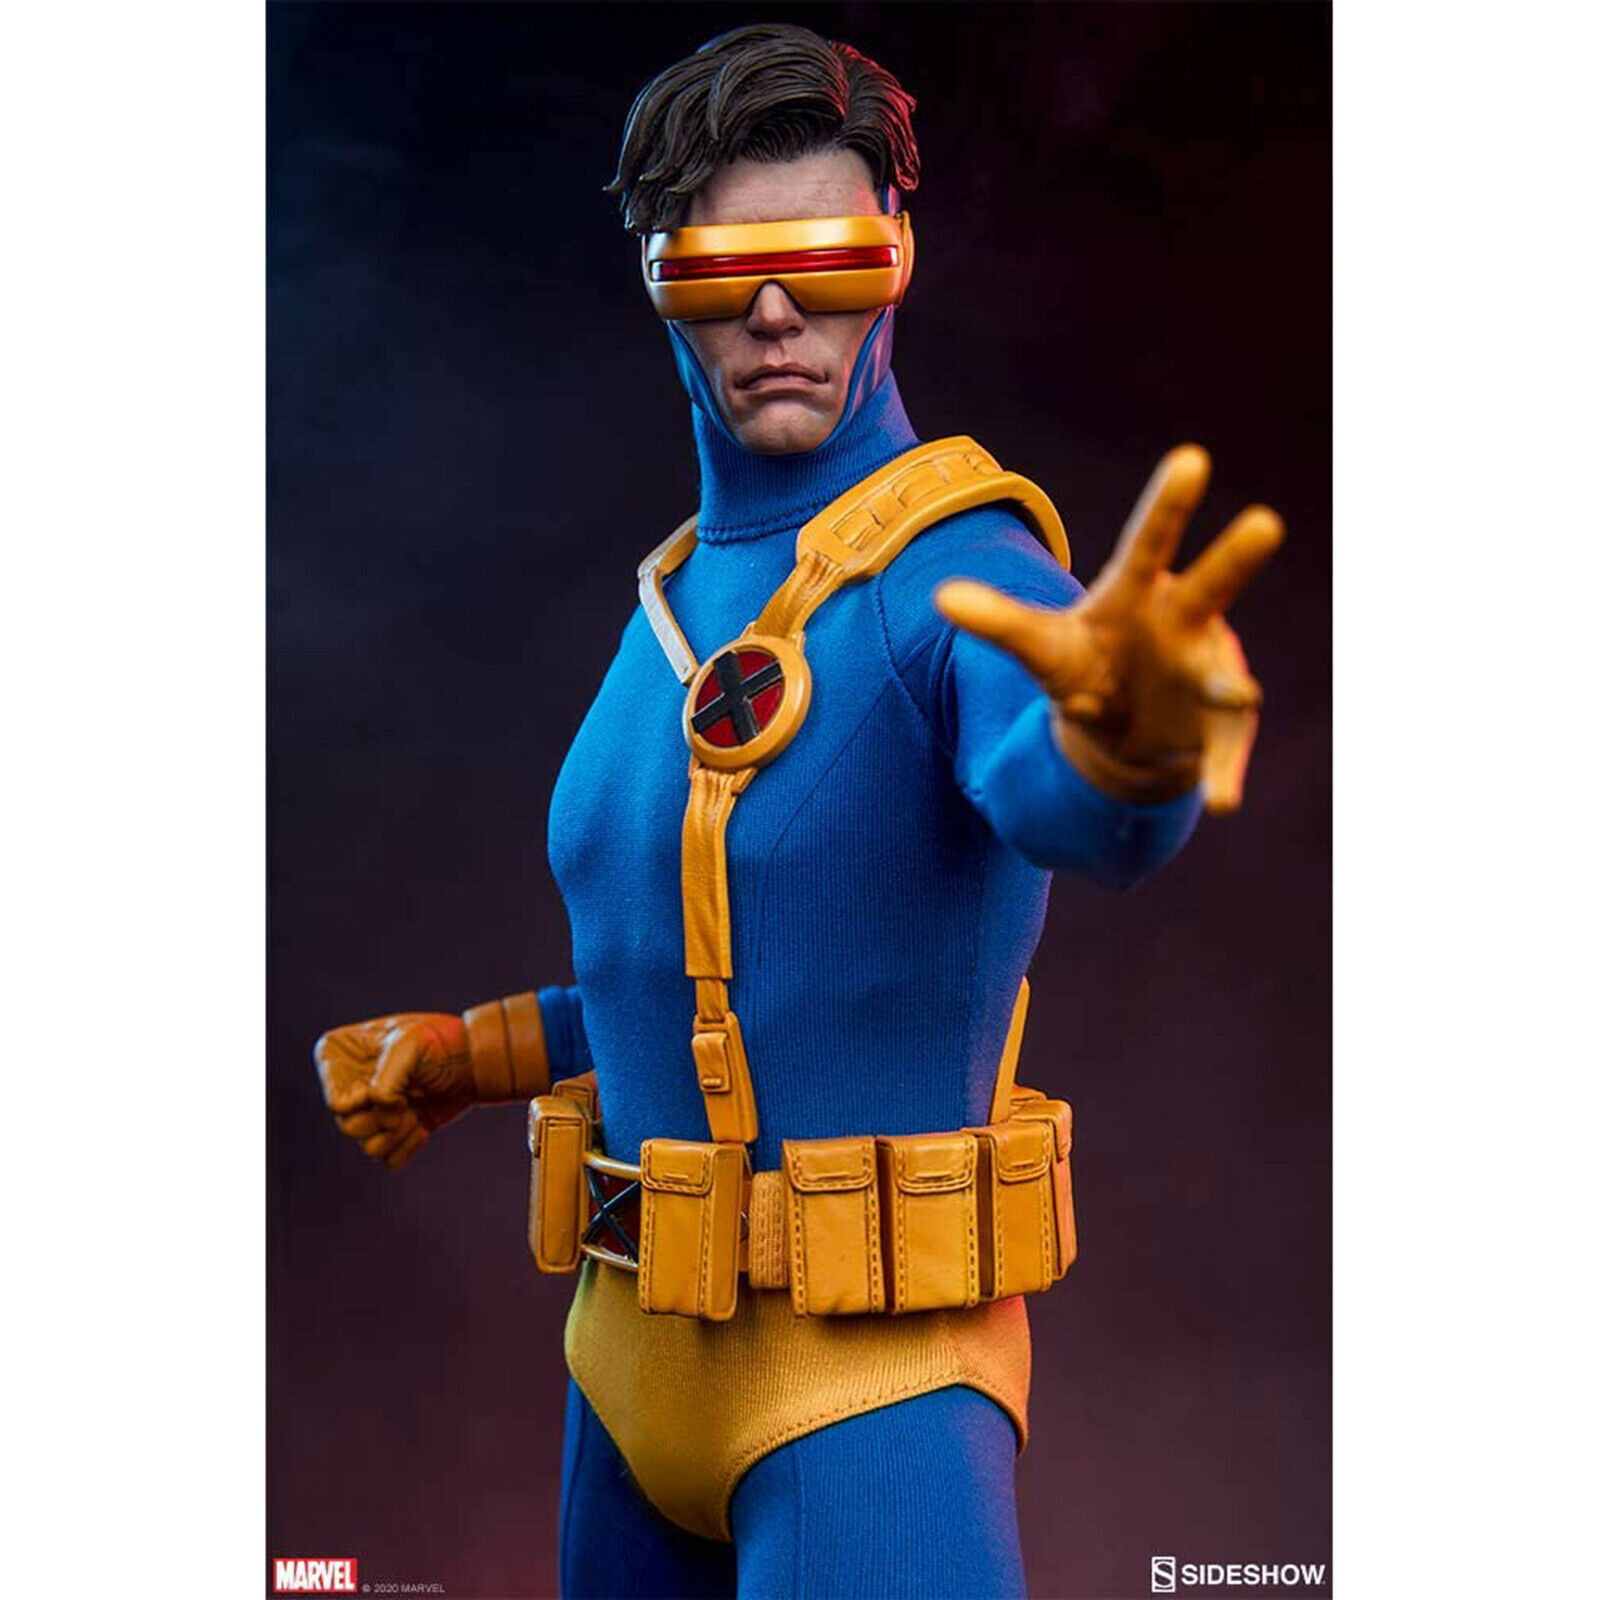 Sideshow Marvel X-Men Cyclops Sixth Scale Figure NEW IN STOCK on eBay thumbnail